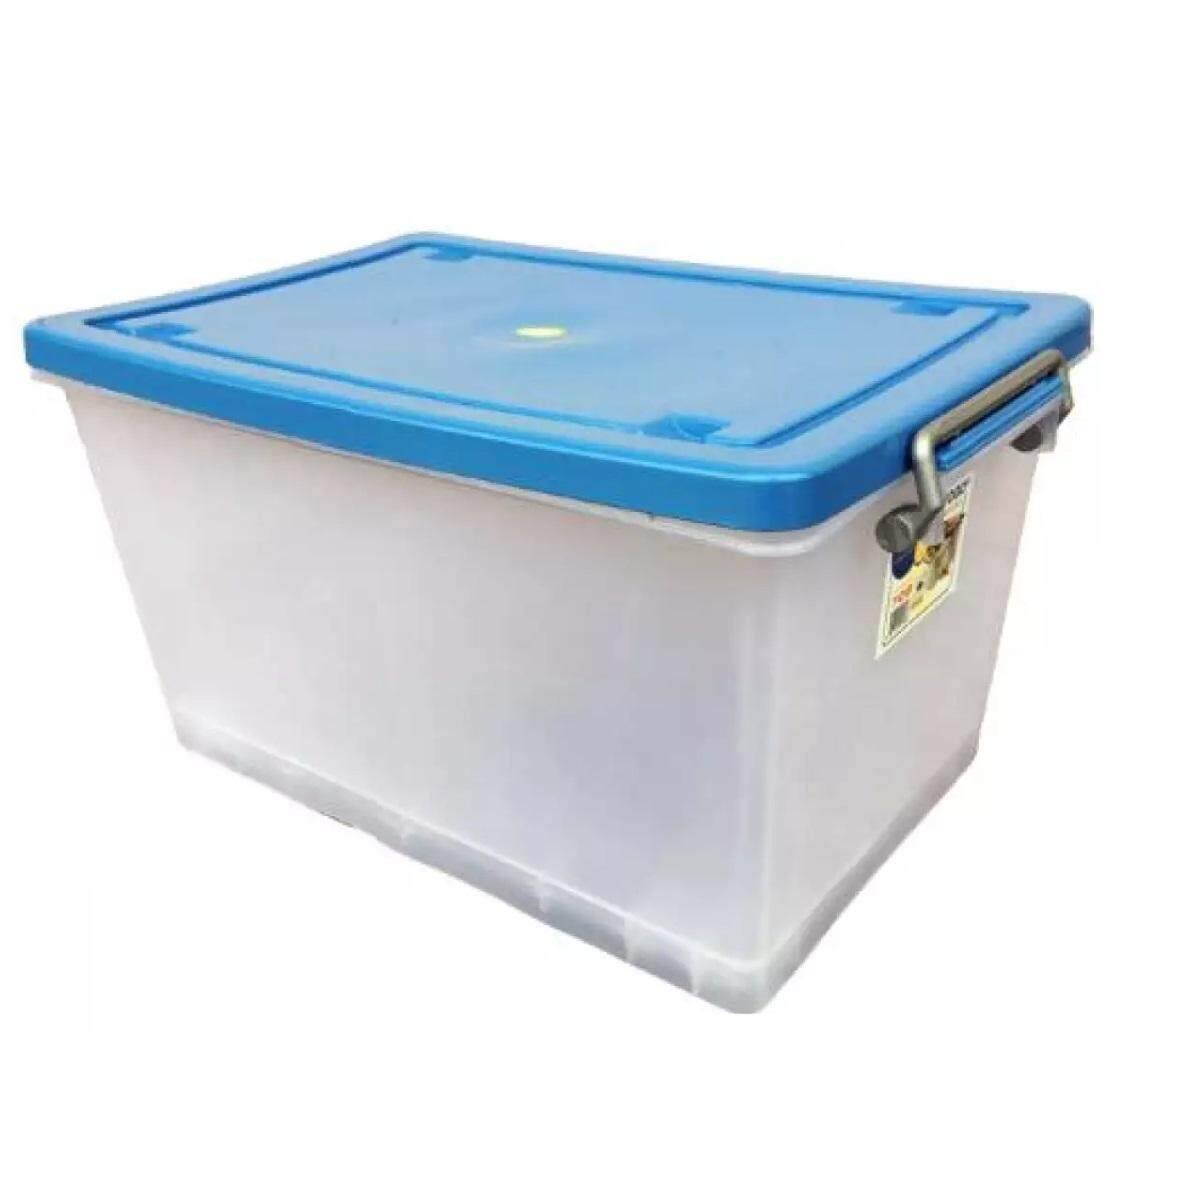 (OW) Toyogo 7 Series 08 Storage Box - 42 Lit